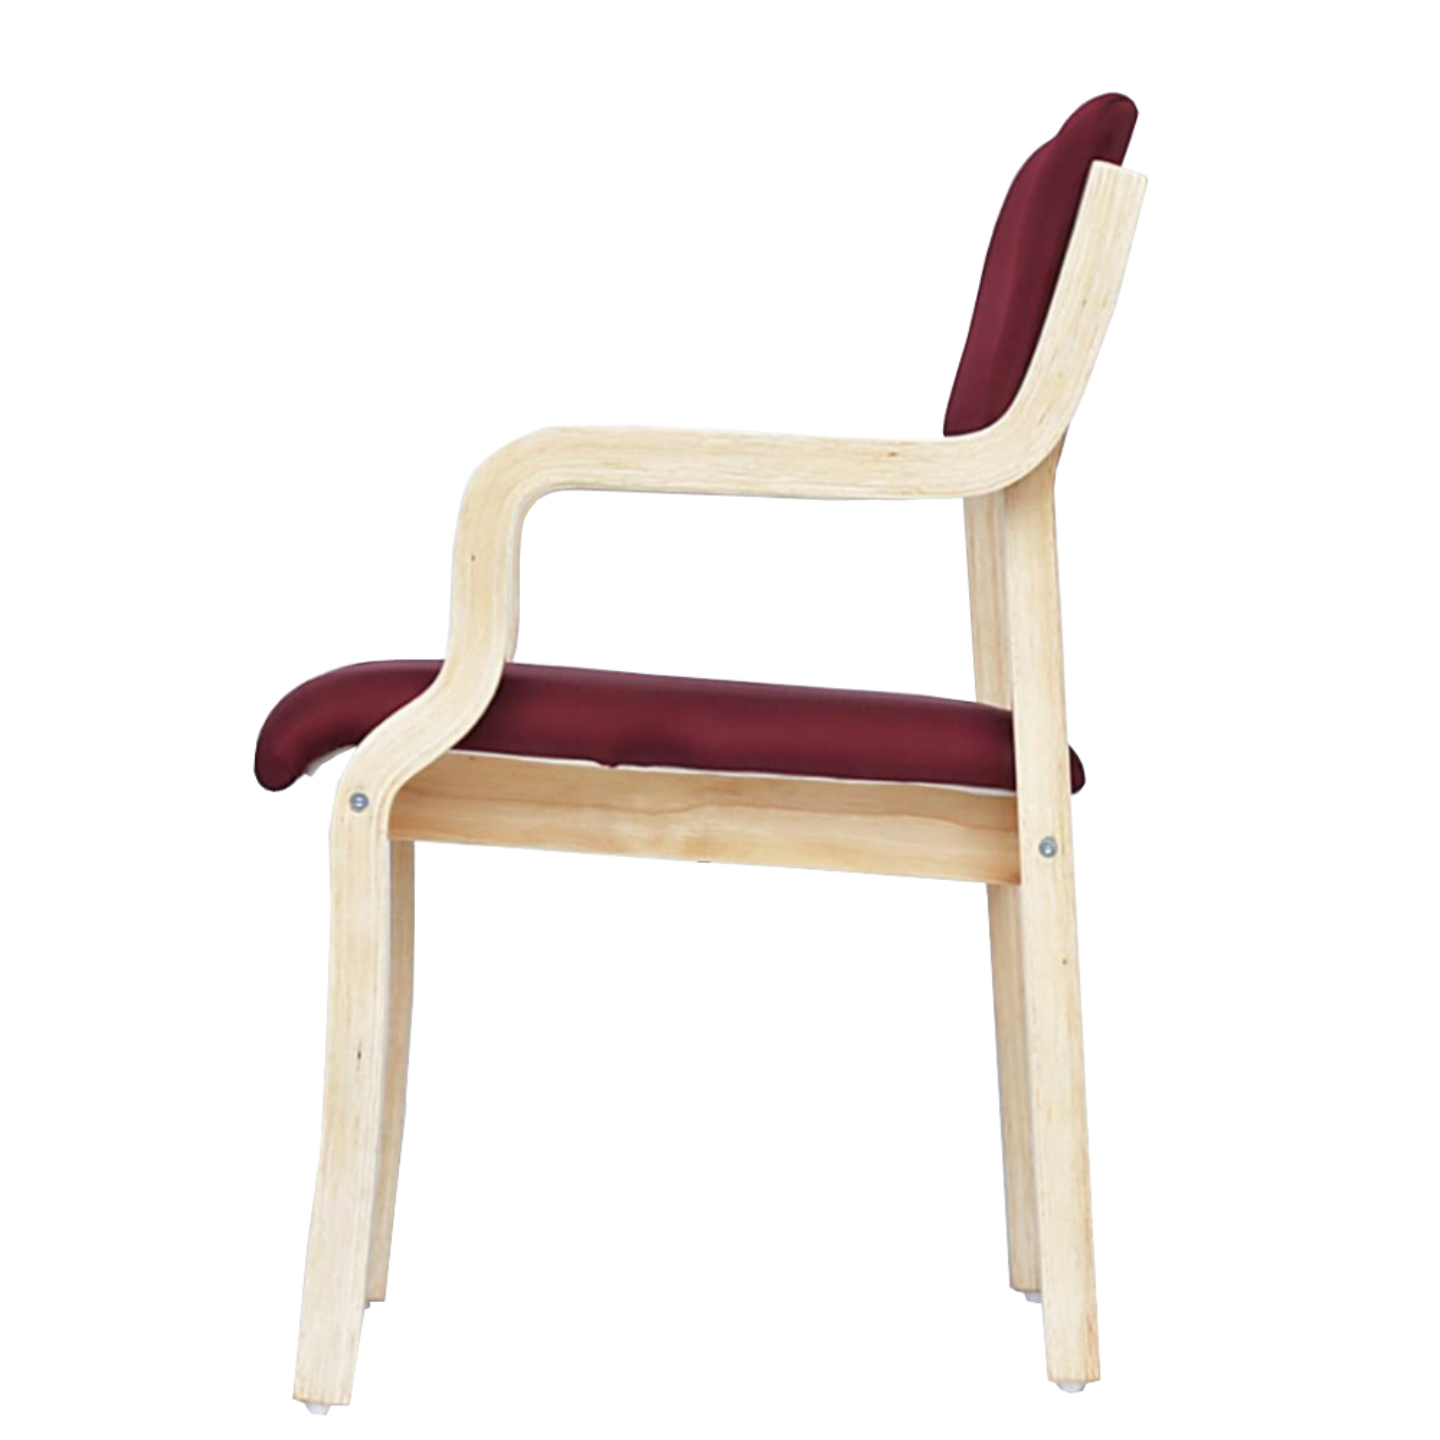 Wooden Seating for Dining Contemporary Cafe Chair POST